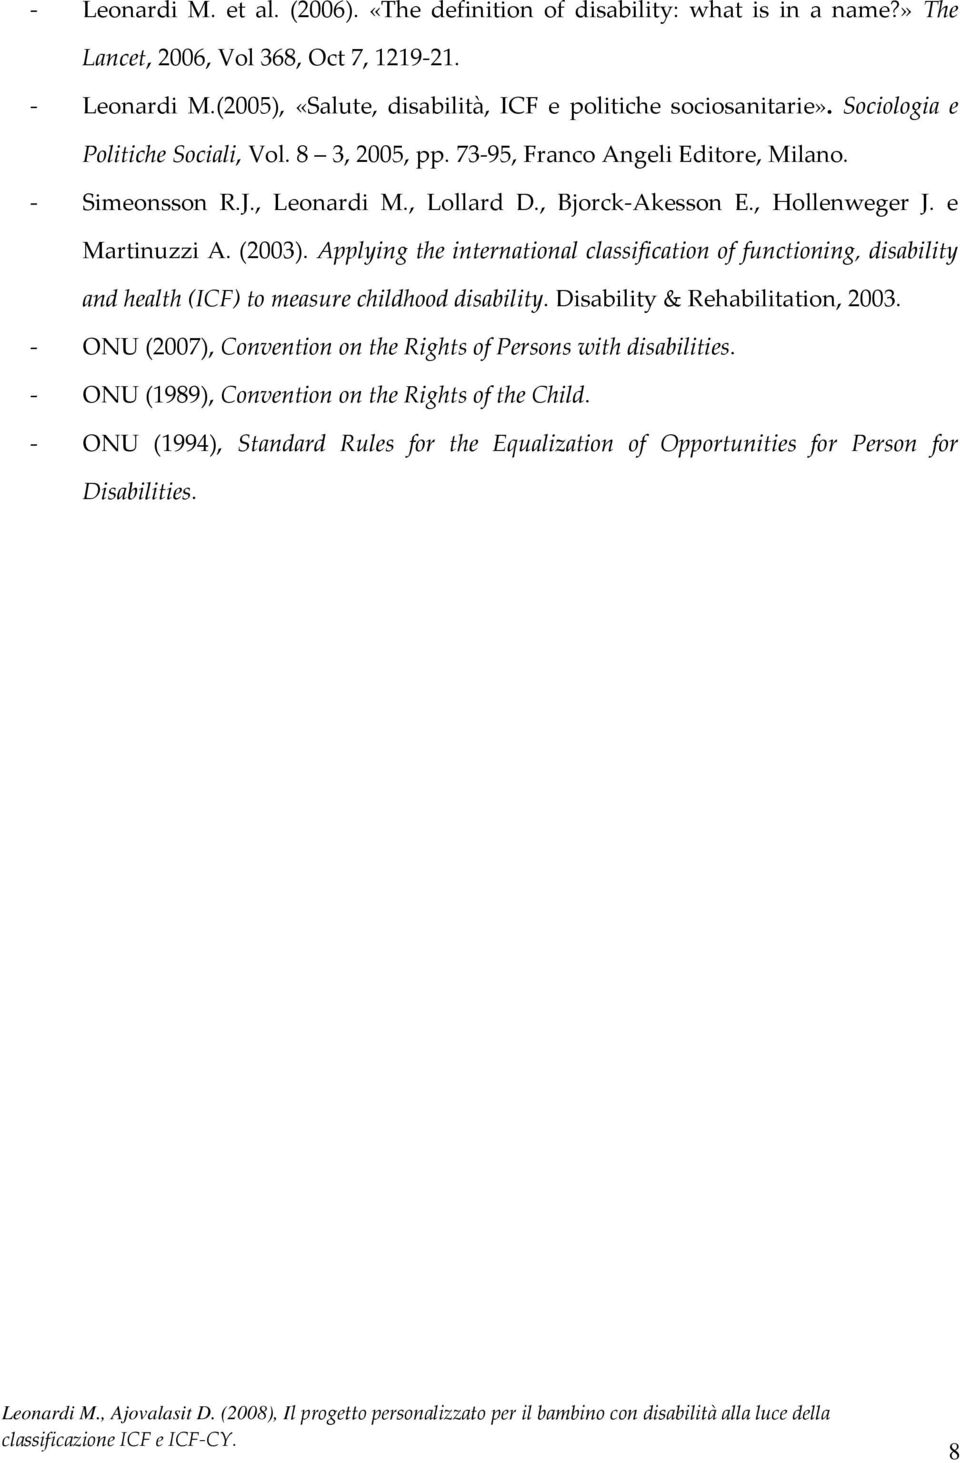 , Lollard D., Bjorck-Akesson E., Hollenweger J. e Martinuzzi A. (2003). Applying the international classification of functioning, disability and health (ICF) to measure childhood disability.